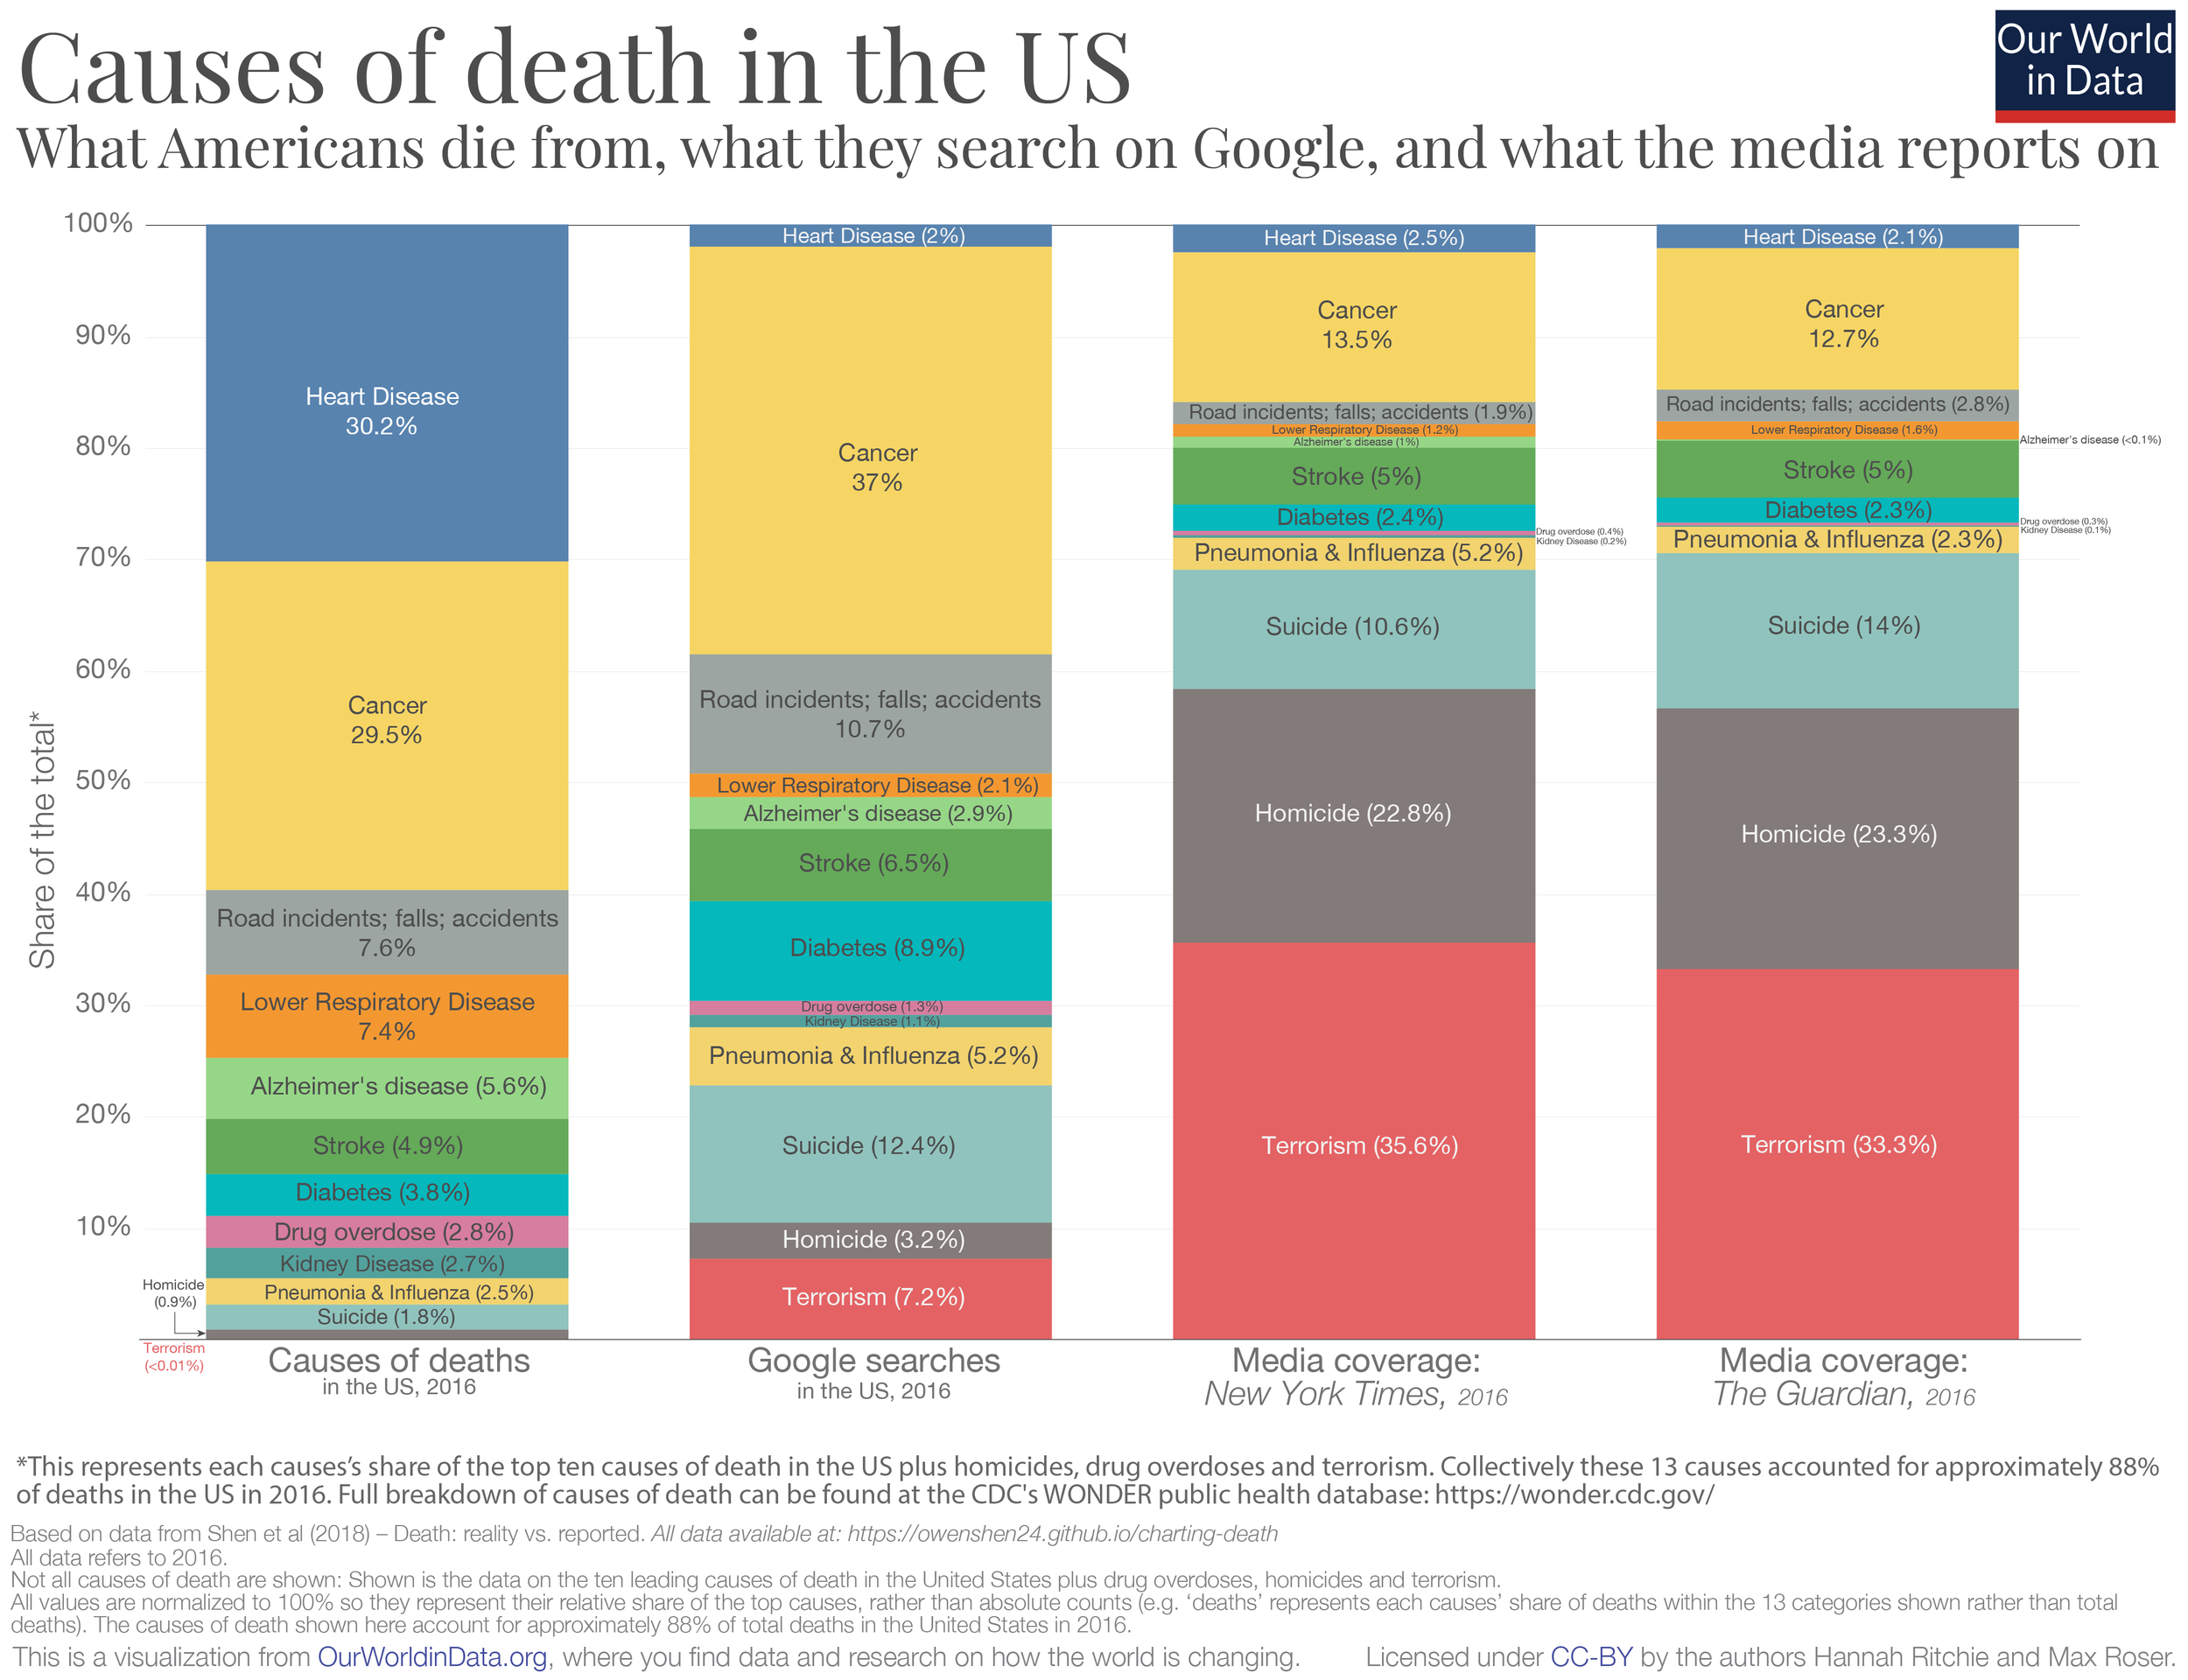 (Source: Our World in Data)